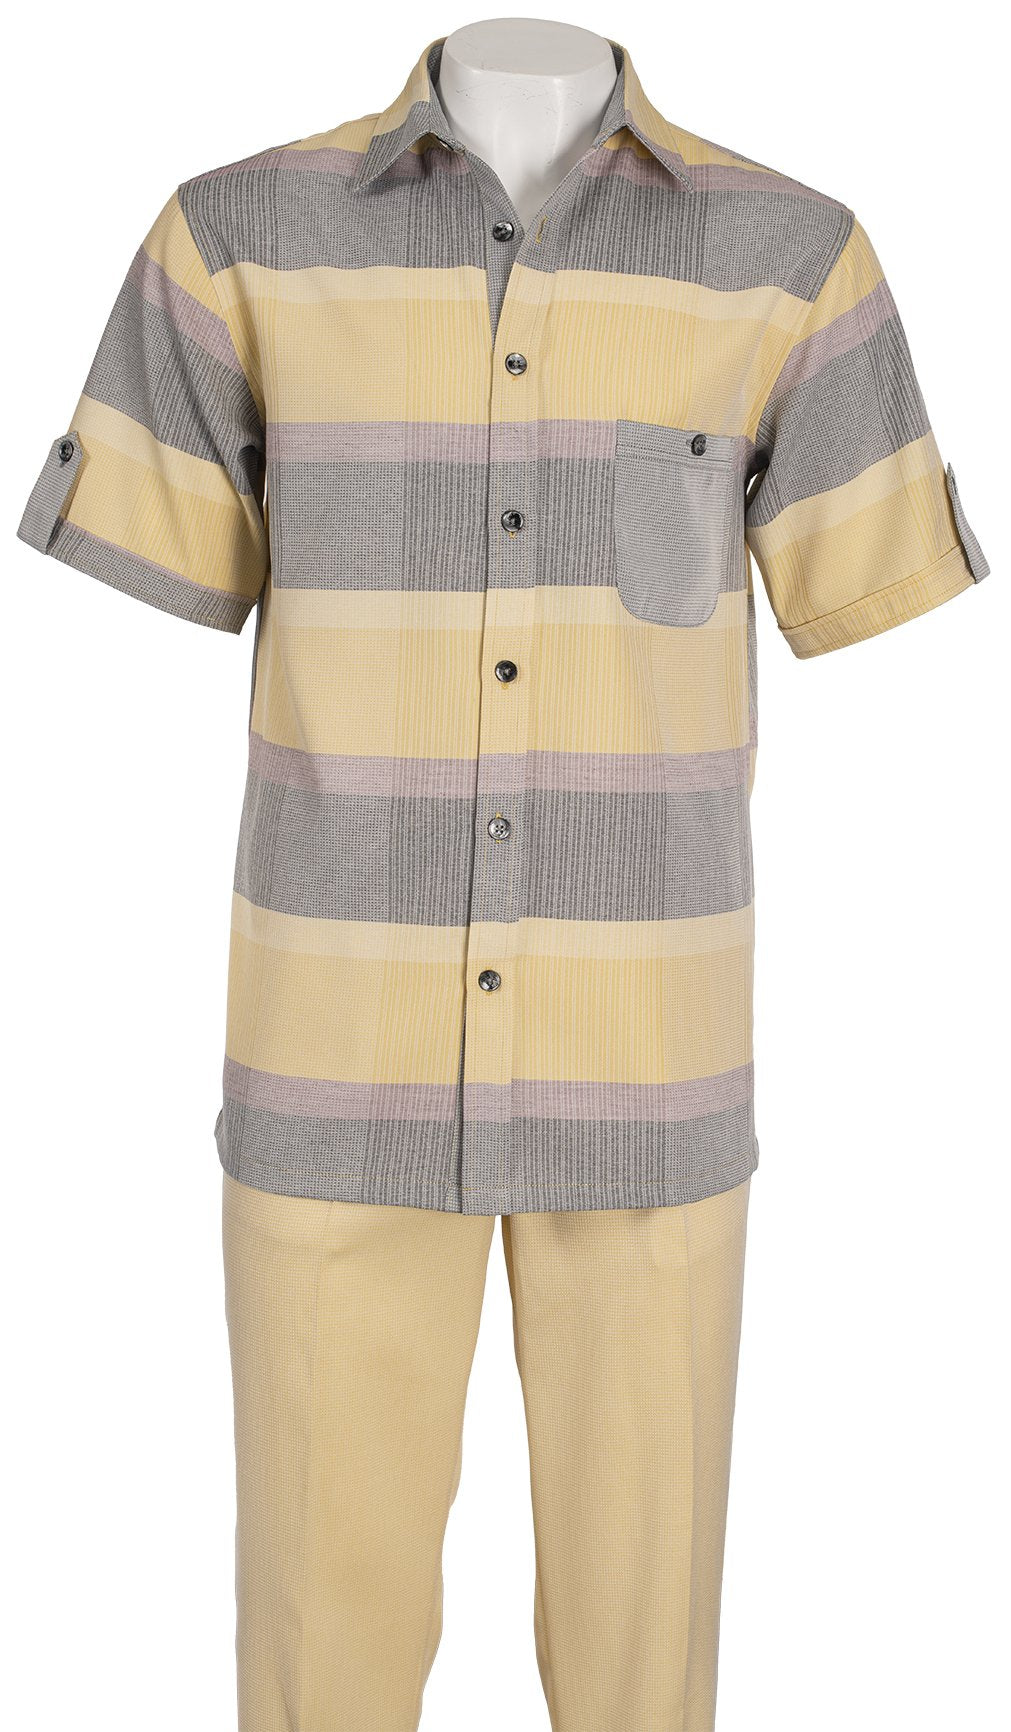 Inserch Giorgio Inserti S/S Shirt with Bold Stripe and Matching Pants Set 742-16 Yellow